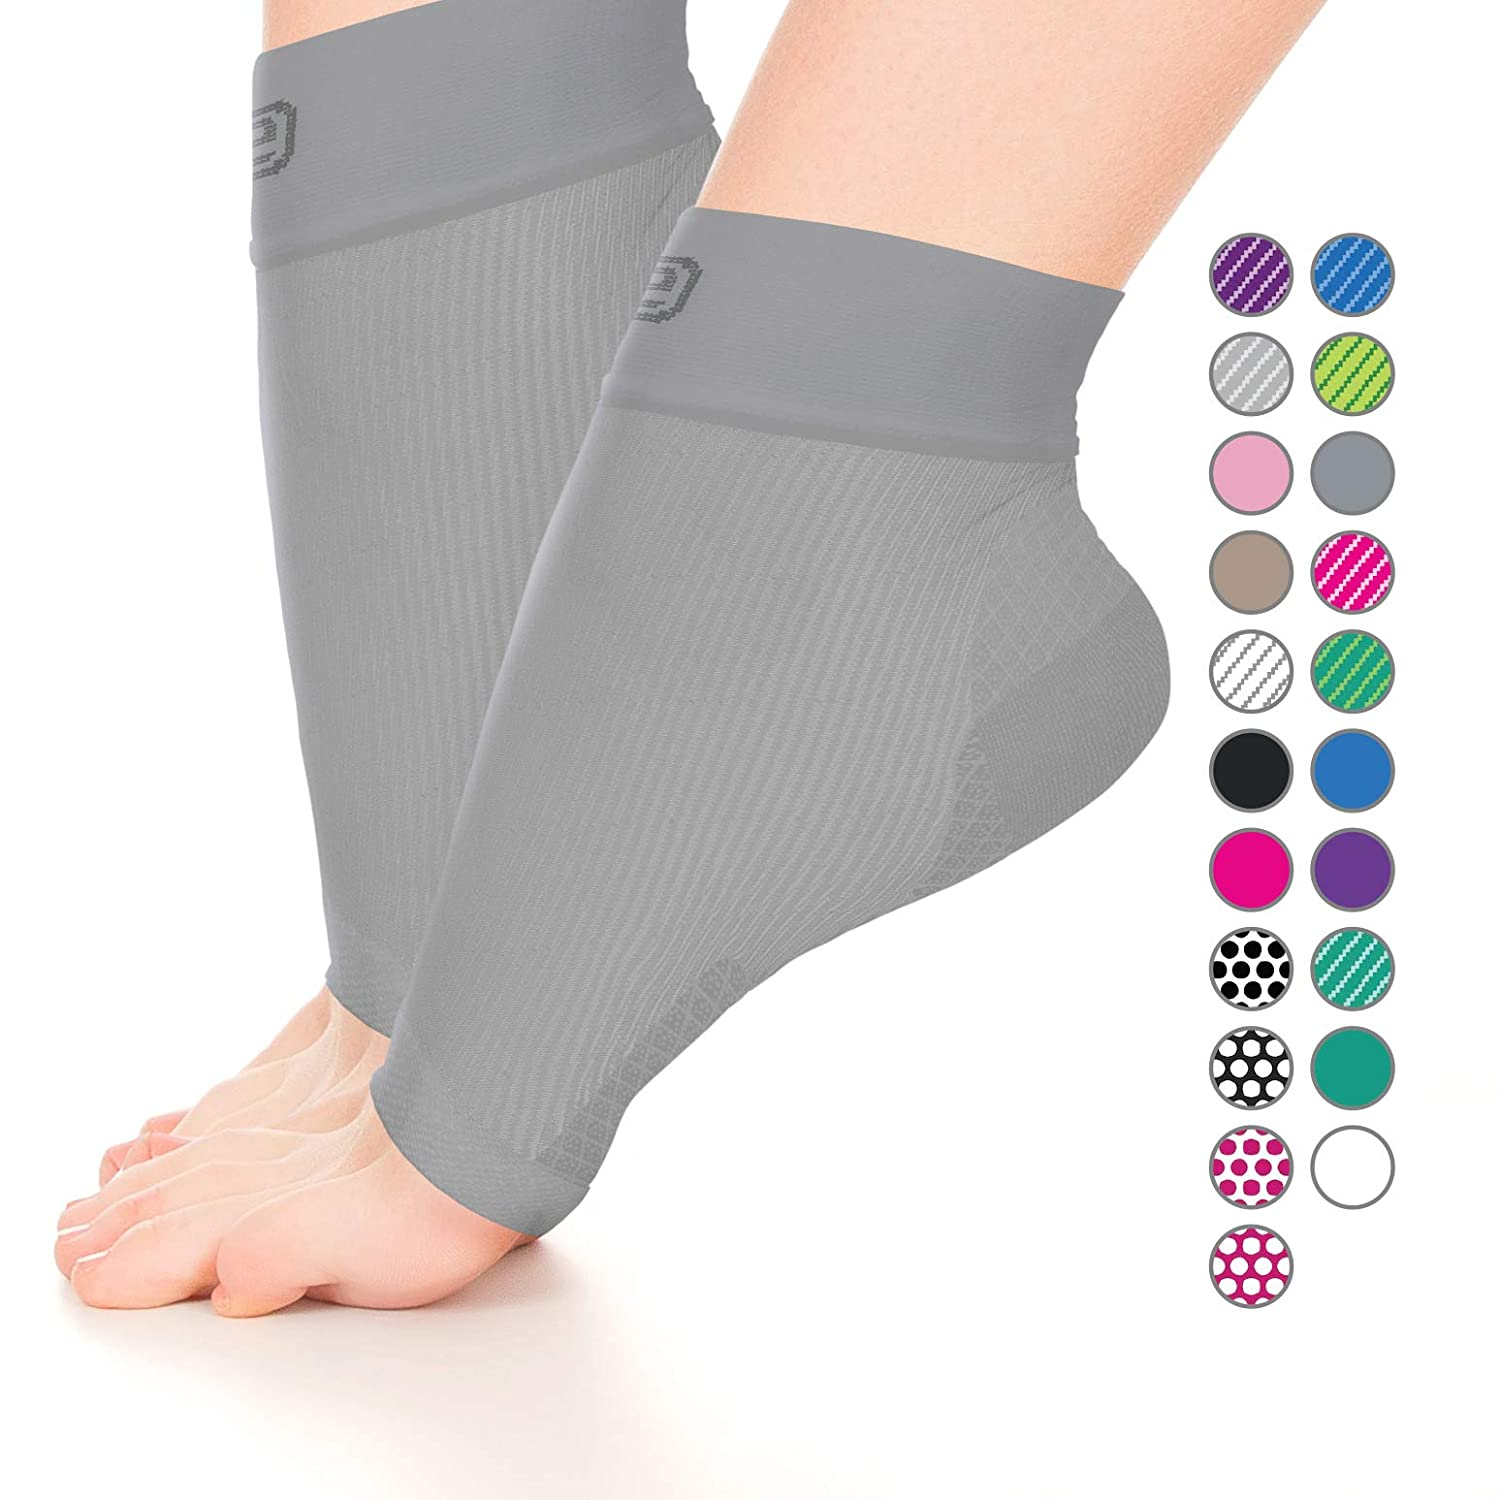 Go2 Plantar Fasciitis Socks | Best Ankle Compression Brace 22-25 mmHg | Arch Support Joint Heel Pain Relief | Foot Sleeves for Women and Men Reduce Swelling | Relieve Achilles Tendonitis & Sprain